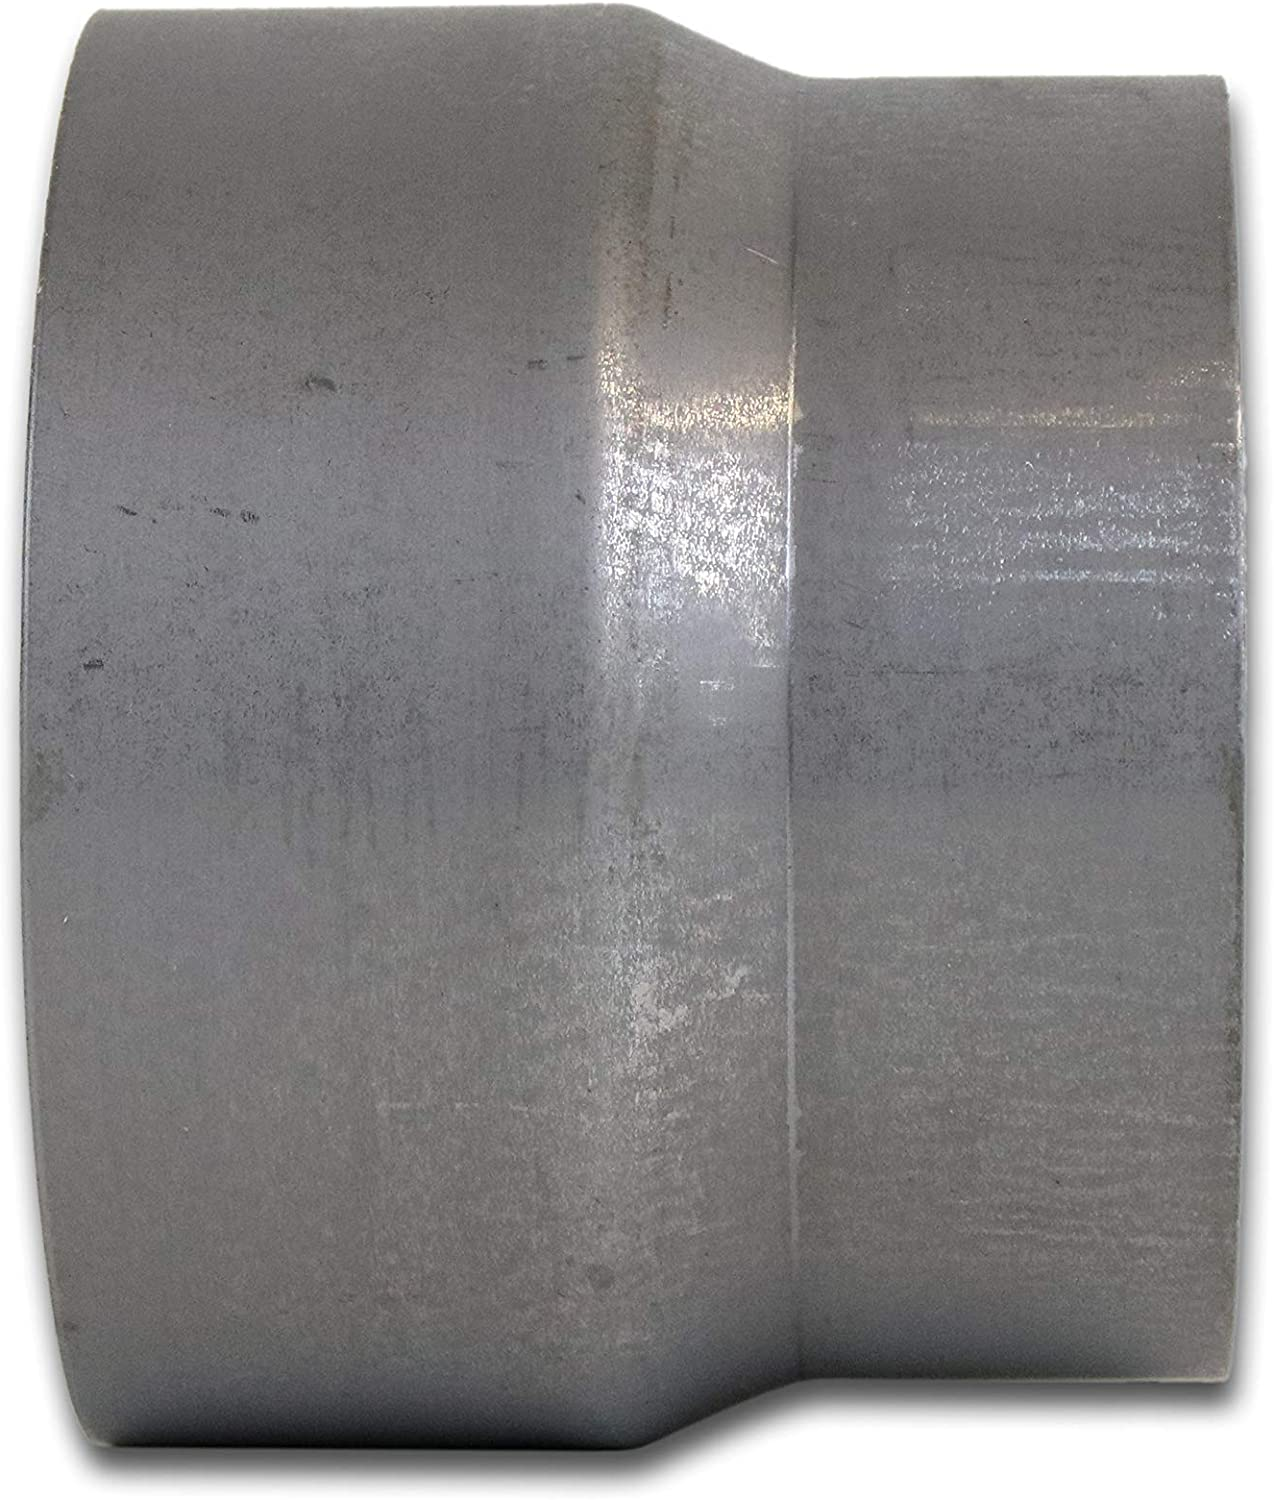 LANZZAS Stove Pipe Reducer 130//120 150//120 150//130 160//150 180//150 180//160 200//180 250//200 Uncoated Steel Unpainted